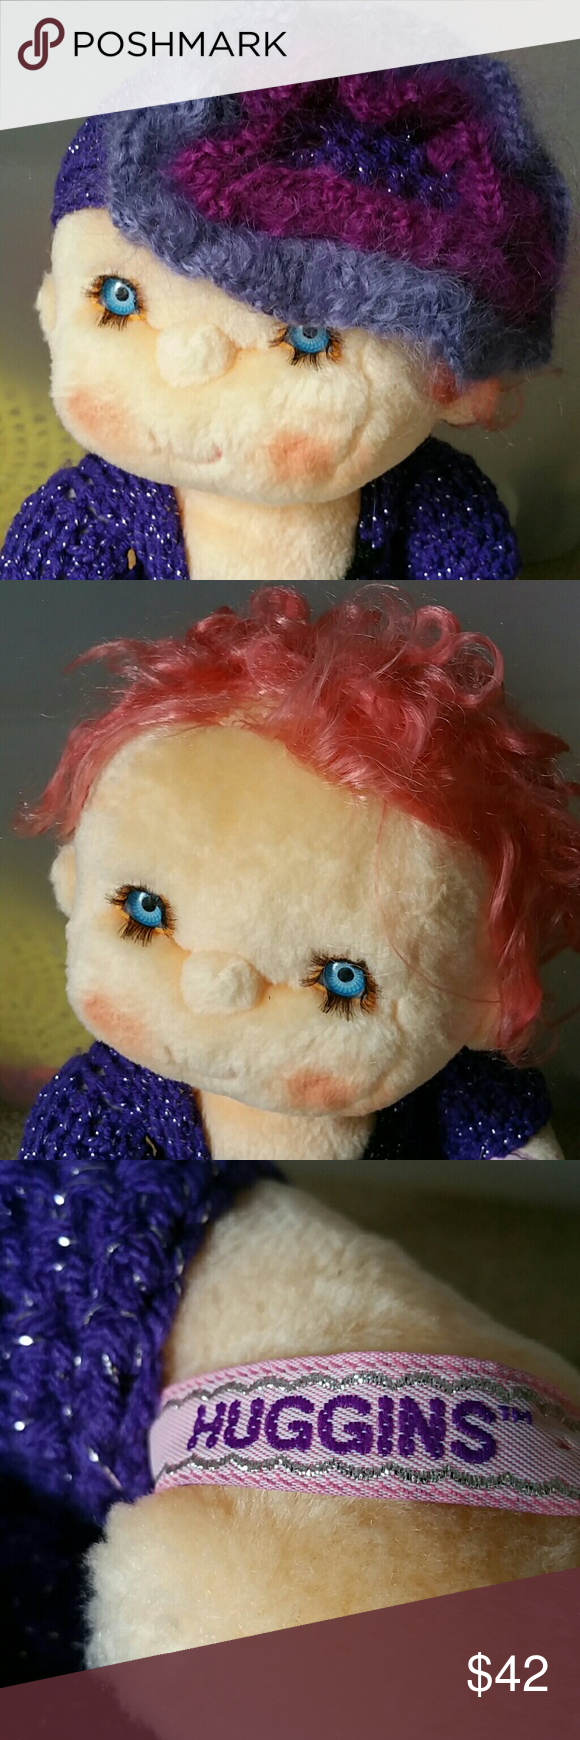 1980's Hugga Bunch Kenner Plush Soft Babies I ACCEPT OFFERS! I NEVER DECLINE OFFERS! I ACCEPT OR COUNTER ONLY!   1985 Huggins Doll.....  Hugga Bunch Kenner Plush Soft Babies... Vintage Collectable Babies  Name: Huggins  18 inches  Pink Hair and Blue eyes  Clothing crocheted  by me. Other